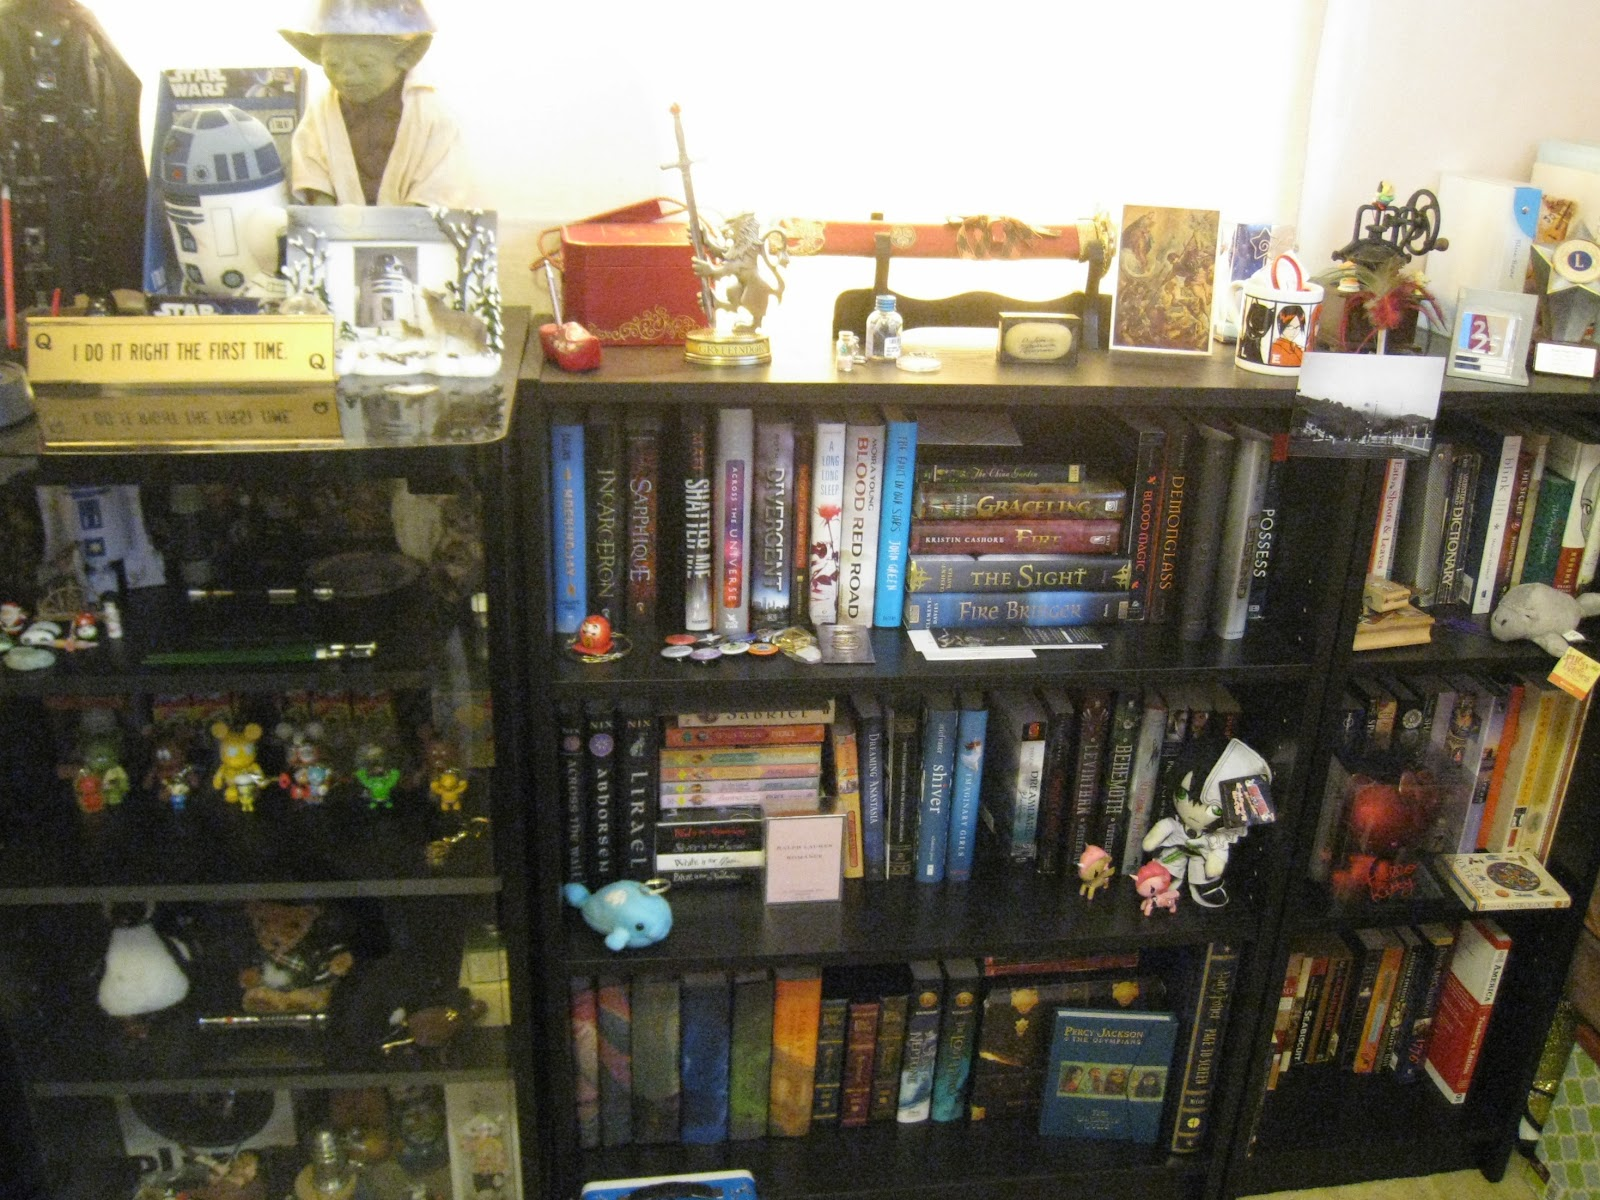 Glass Fronted Case On Left Is What Sis And I Call Our Nerd Geek Cabinet